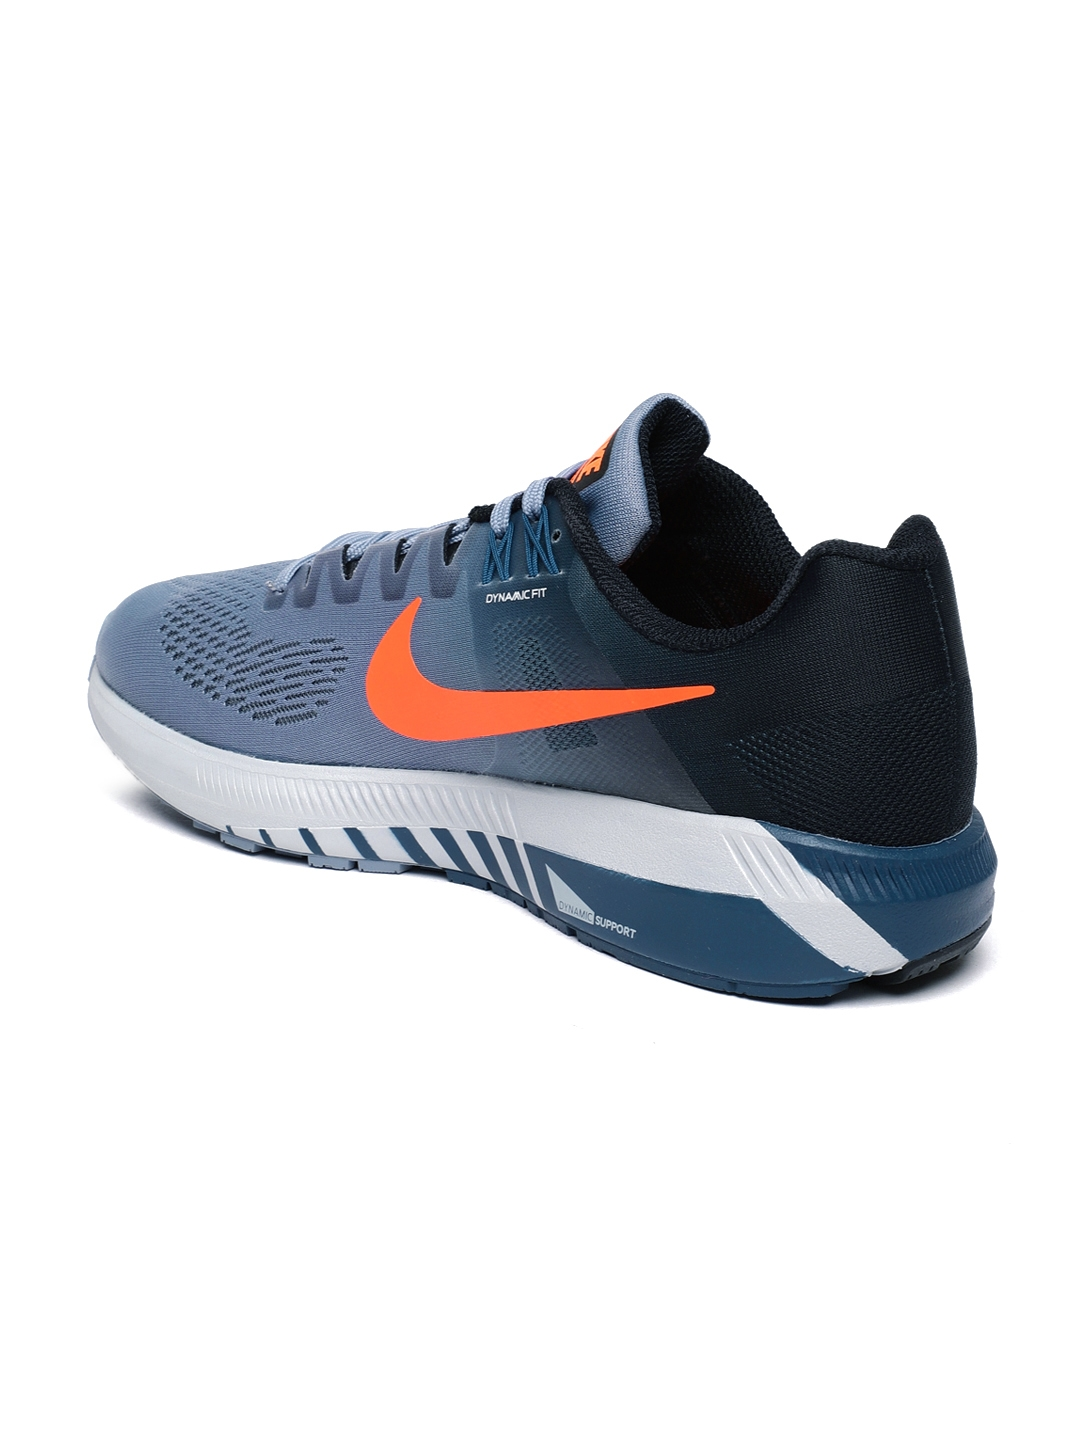 8fc869477090 Buy Nike Men Blue   Black Air Zoom Structure 21 Running Shoes ...